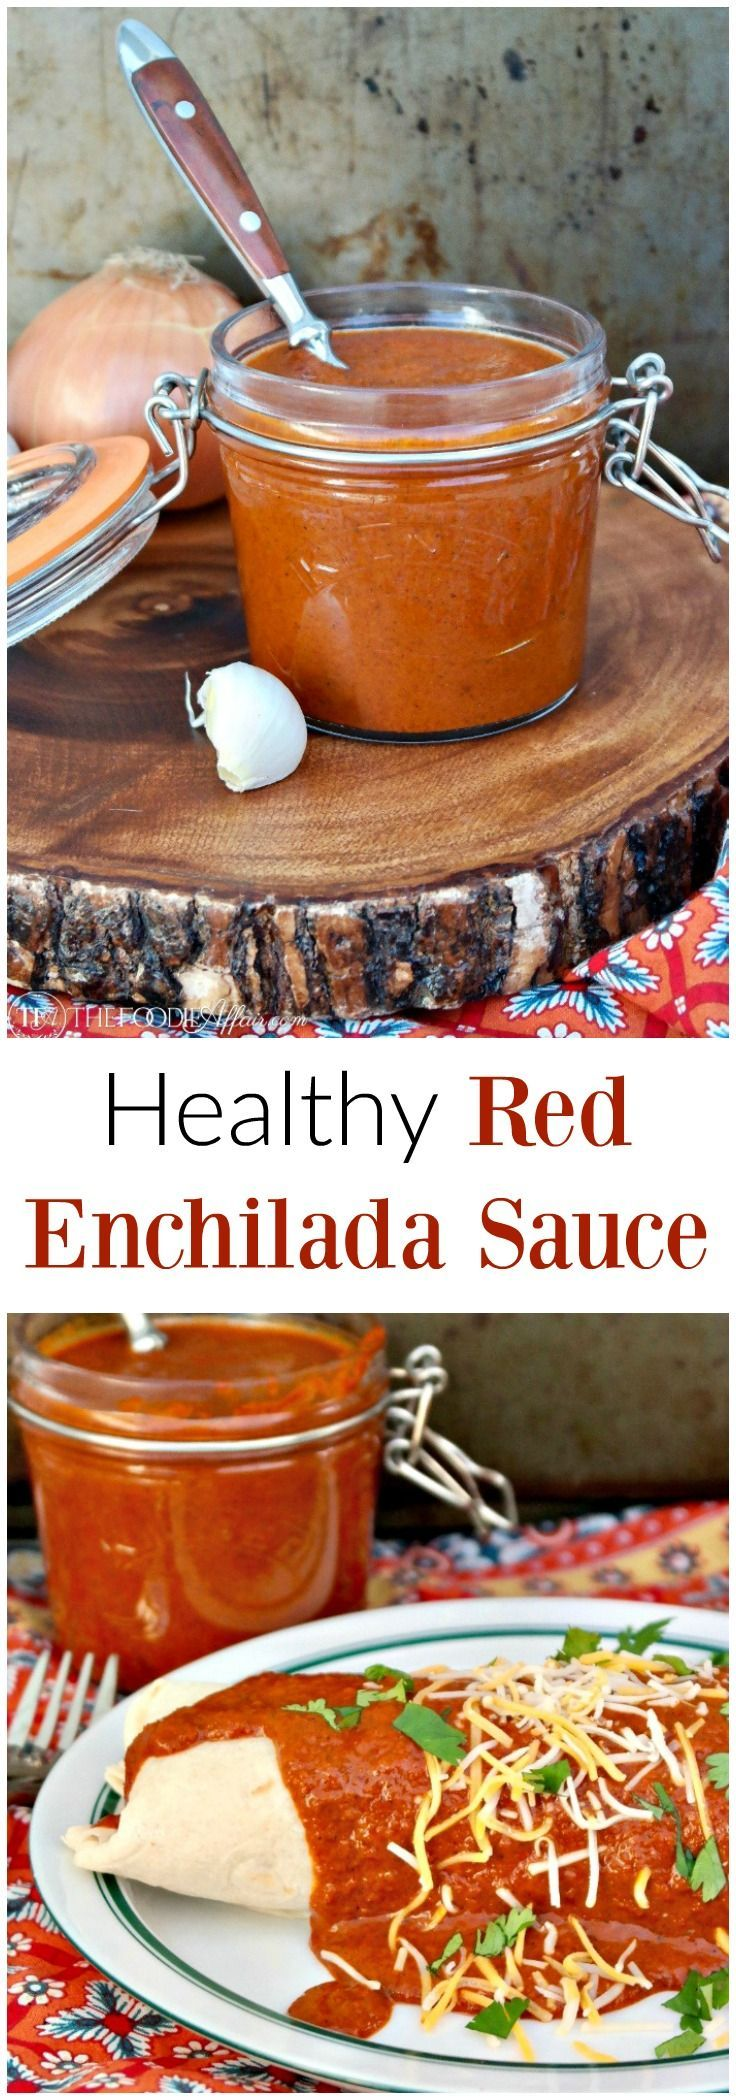 Healthy Red Enchilada Sauce Is The Base For Many Latin Dishes Simple To Make With